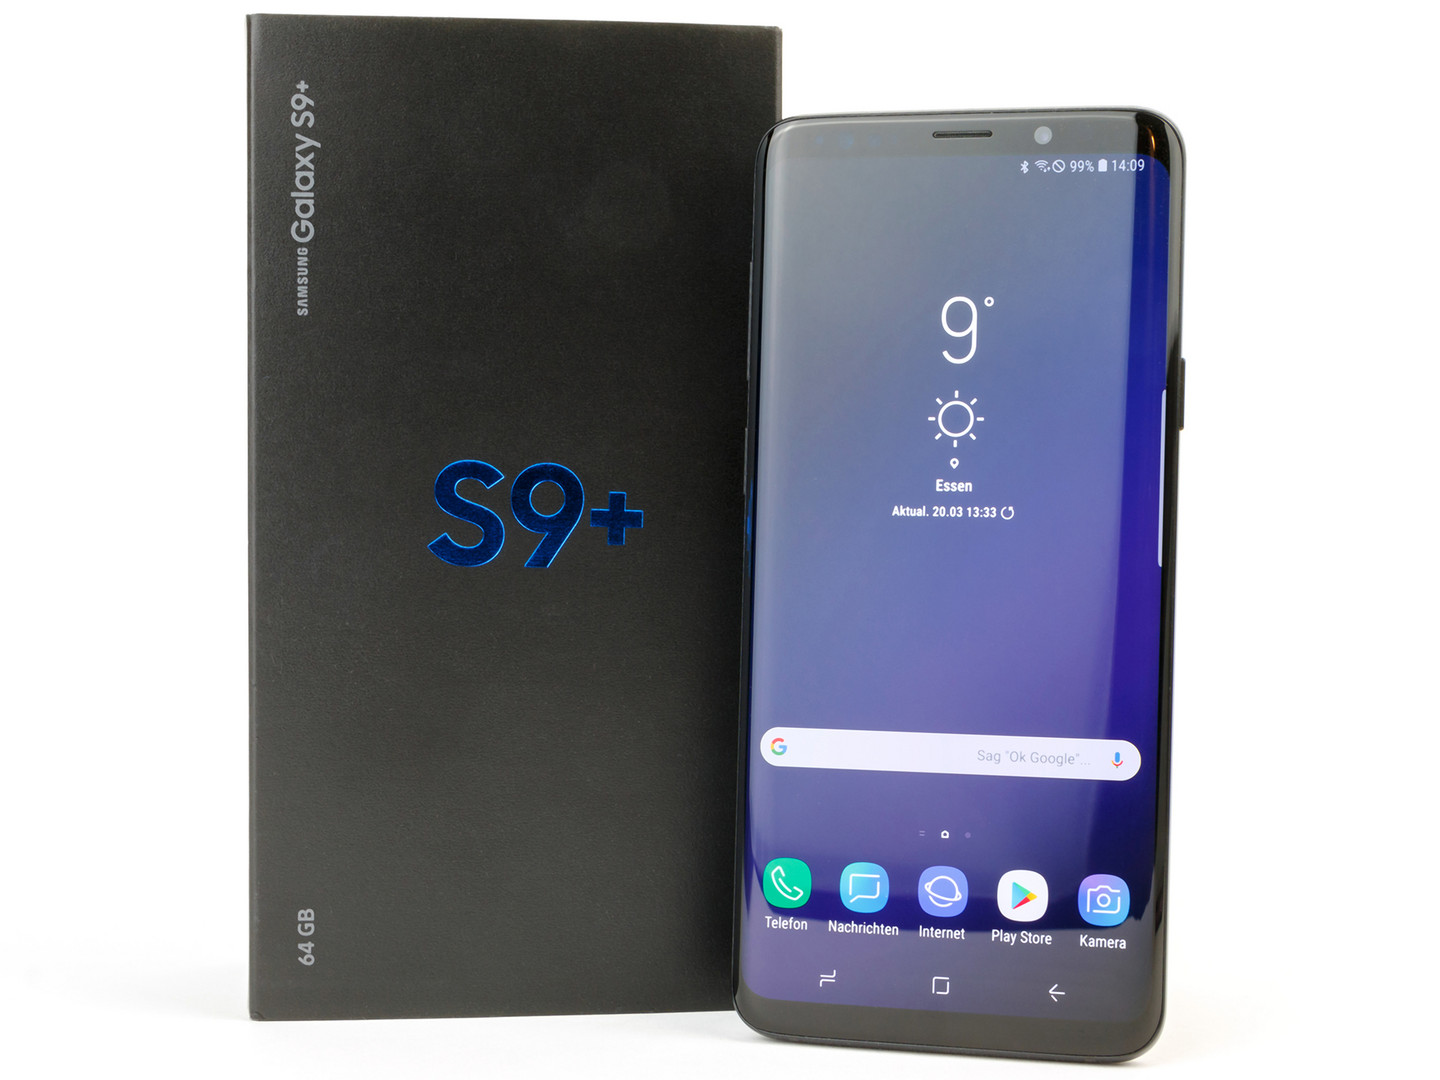 samsung galaxy s9 plus smartphone review notebookcheck. Black Bedroom Furniture Sets. Home Design Ideas